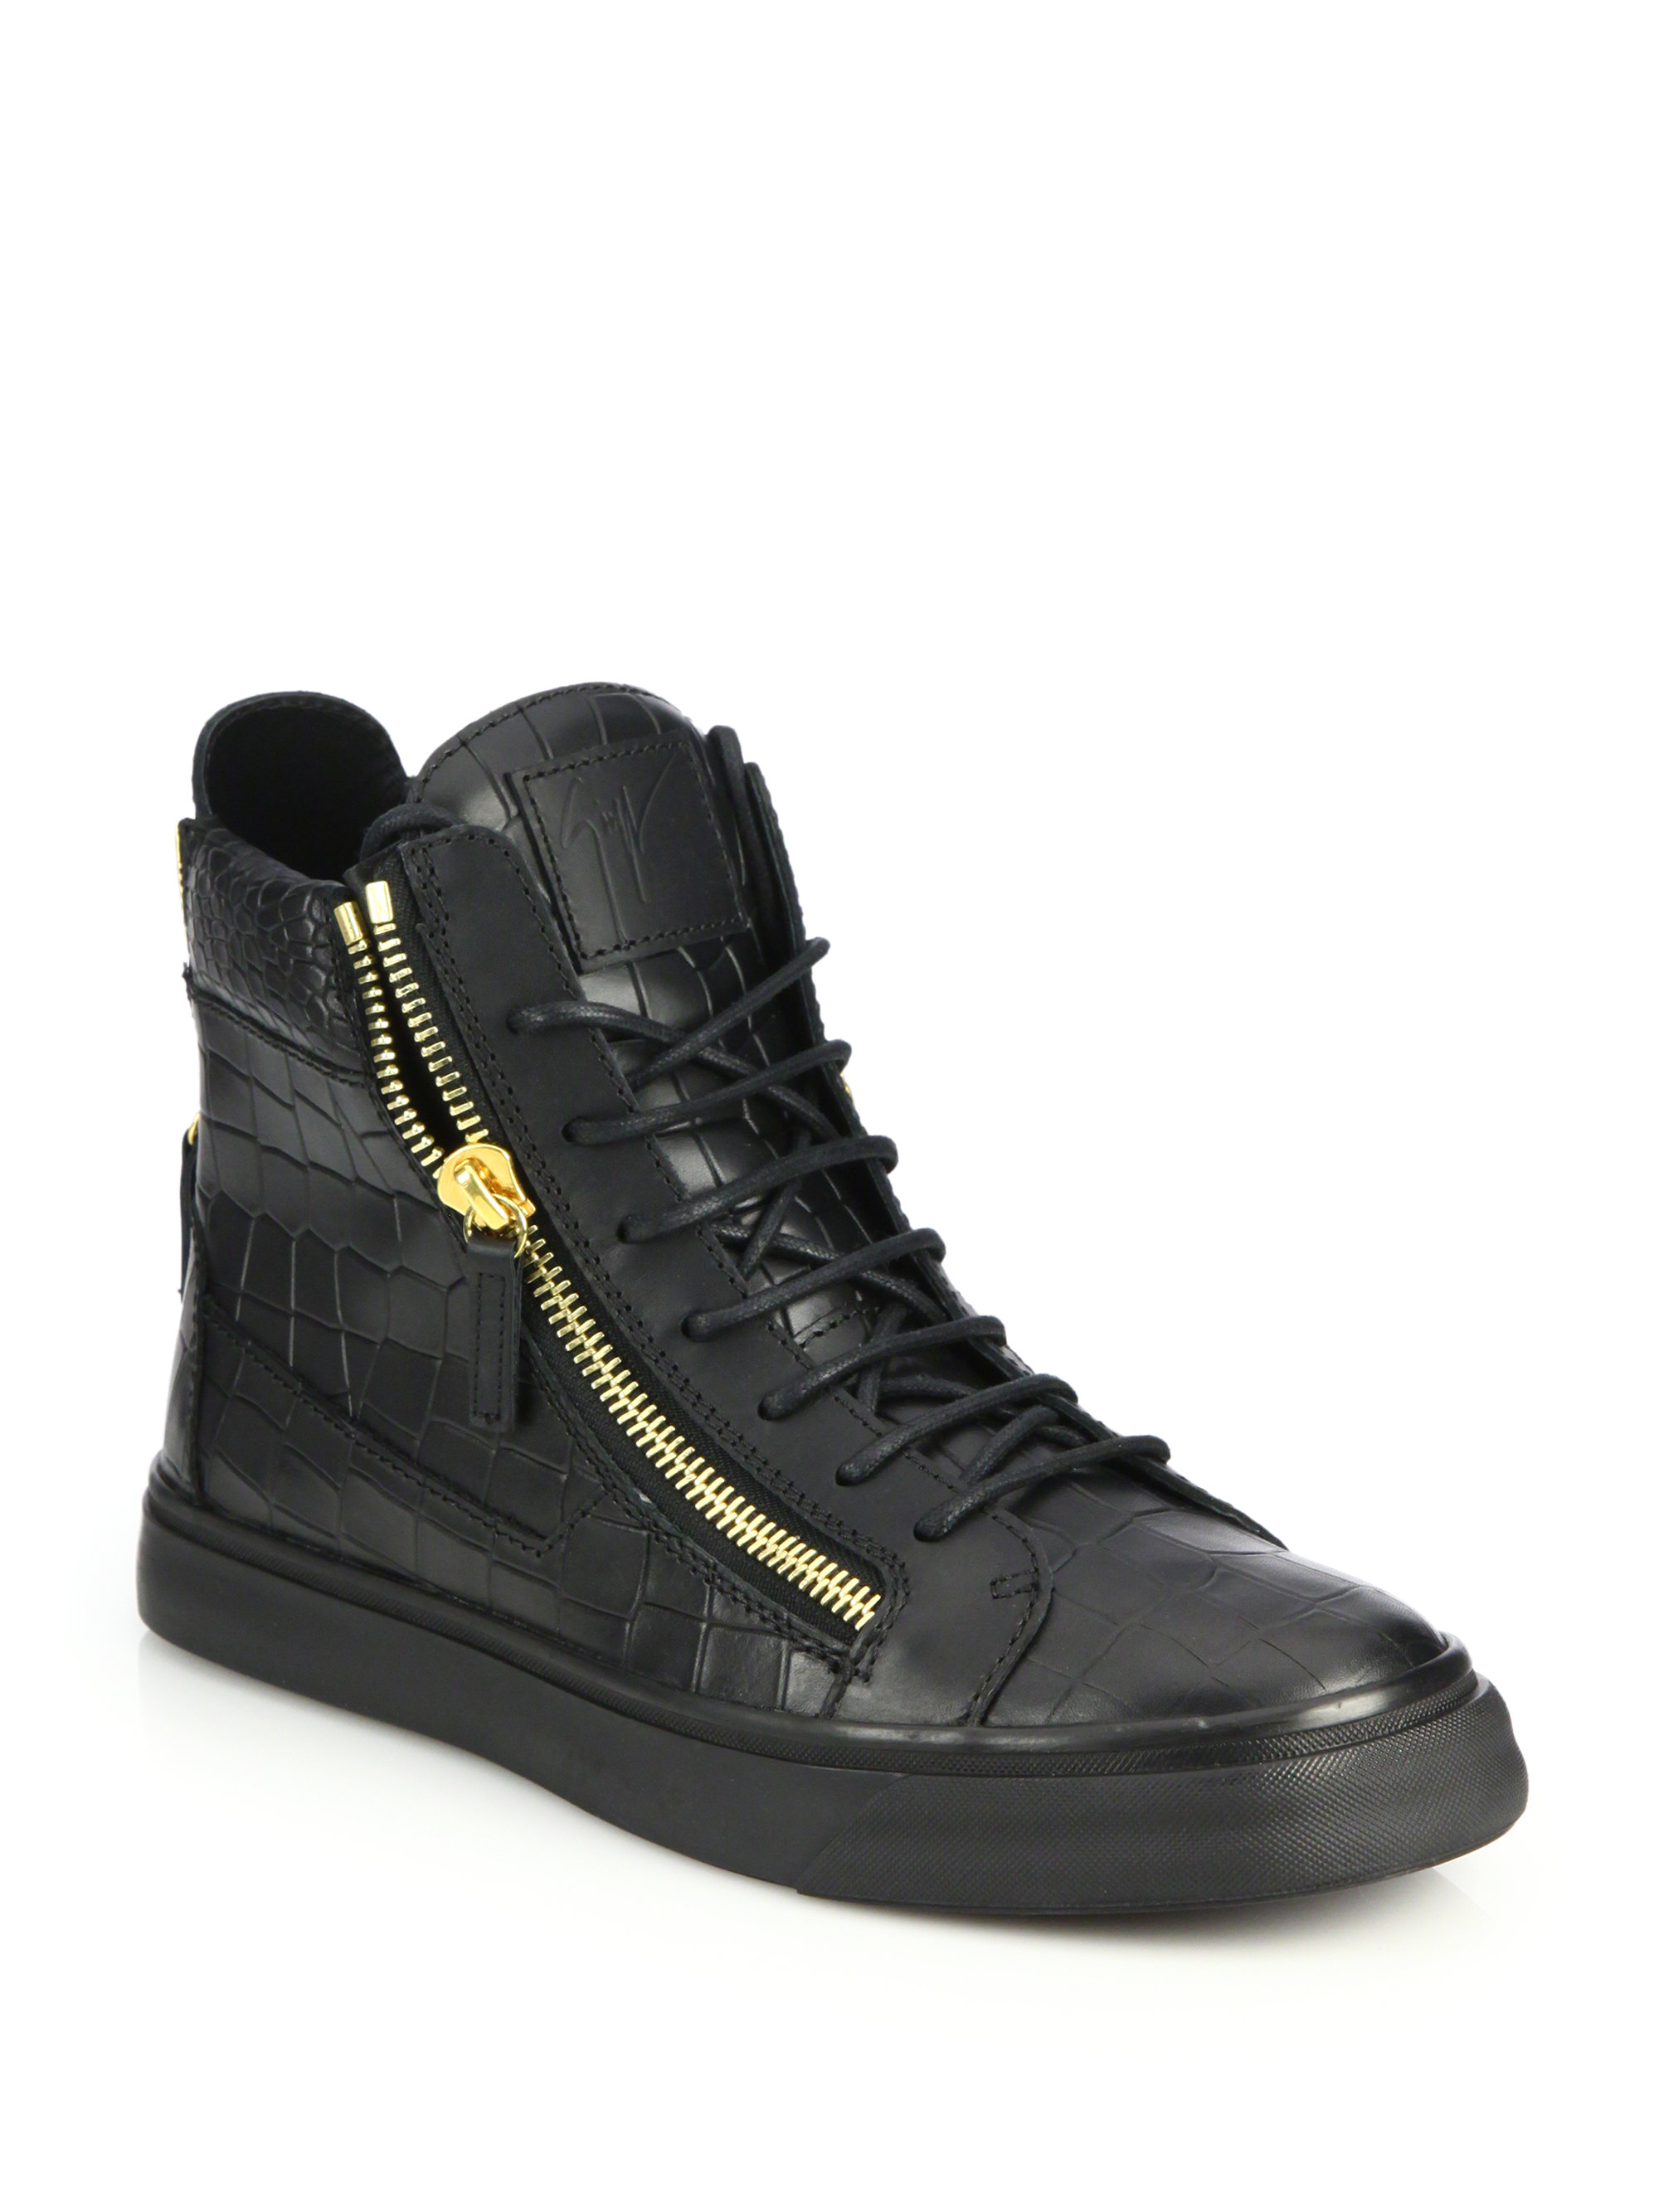 Giuseppe Zanotti Embossed High-Top Sneakers discount free shipping discount collections cheap price outlet sale cheap sale marketable cheap in China cyQJrzm2p